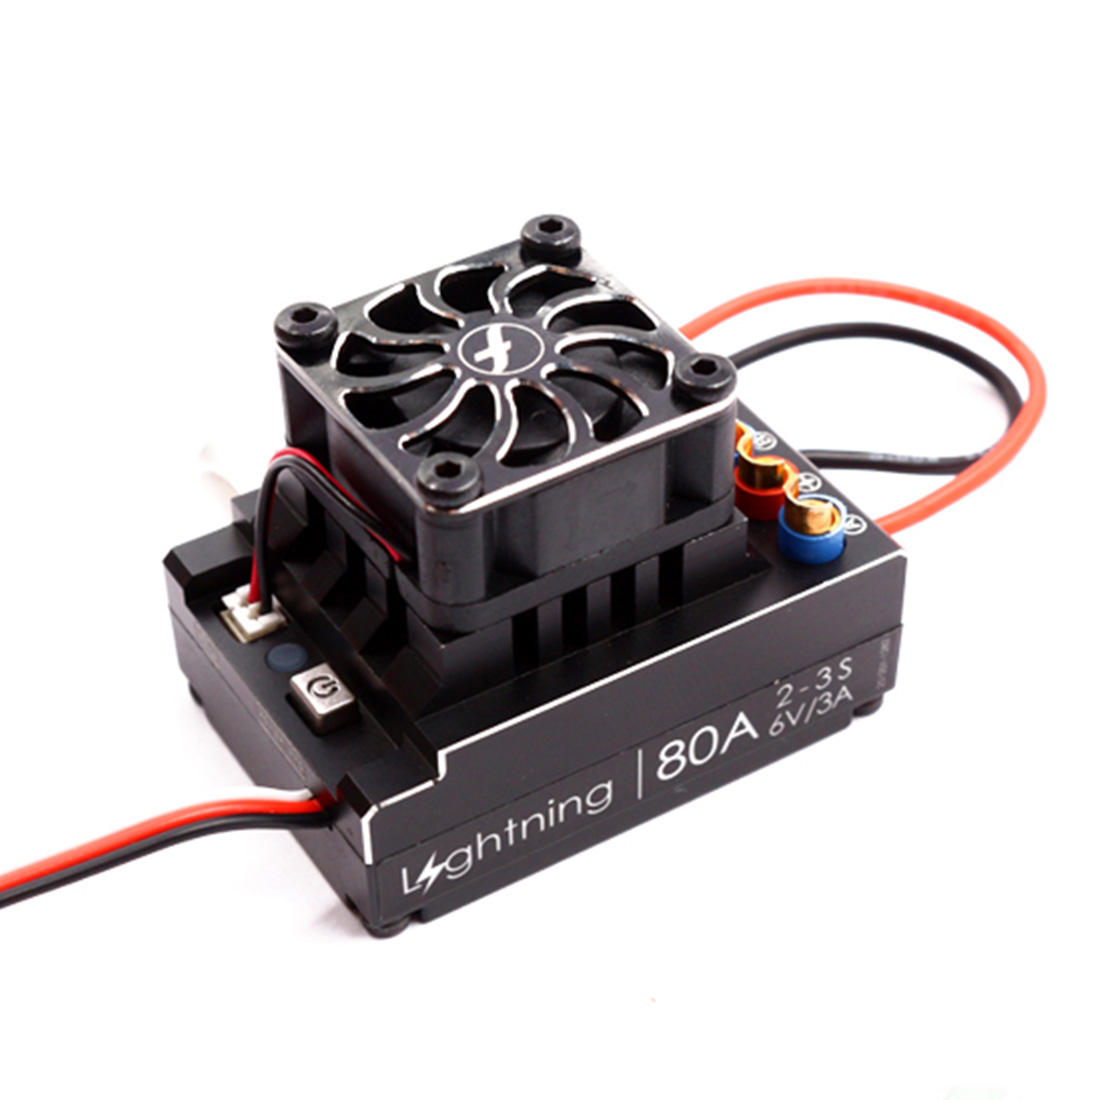 цена на Flycolor Lightning Series Car Vehicle ESC 60A 80A 120A Brushless Electronic Speed Controller 2-3S for RC Speeding Car Module